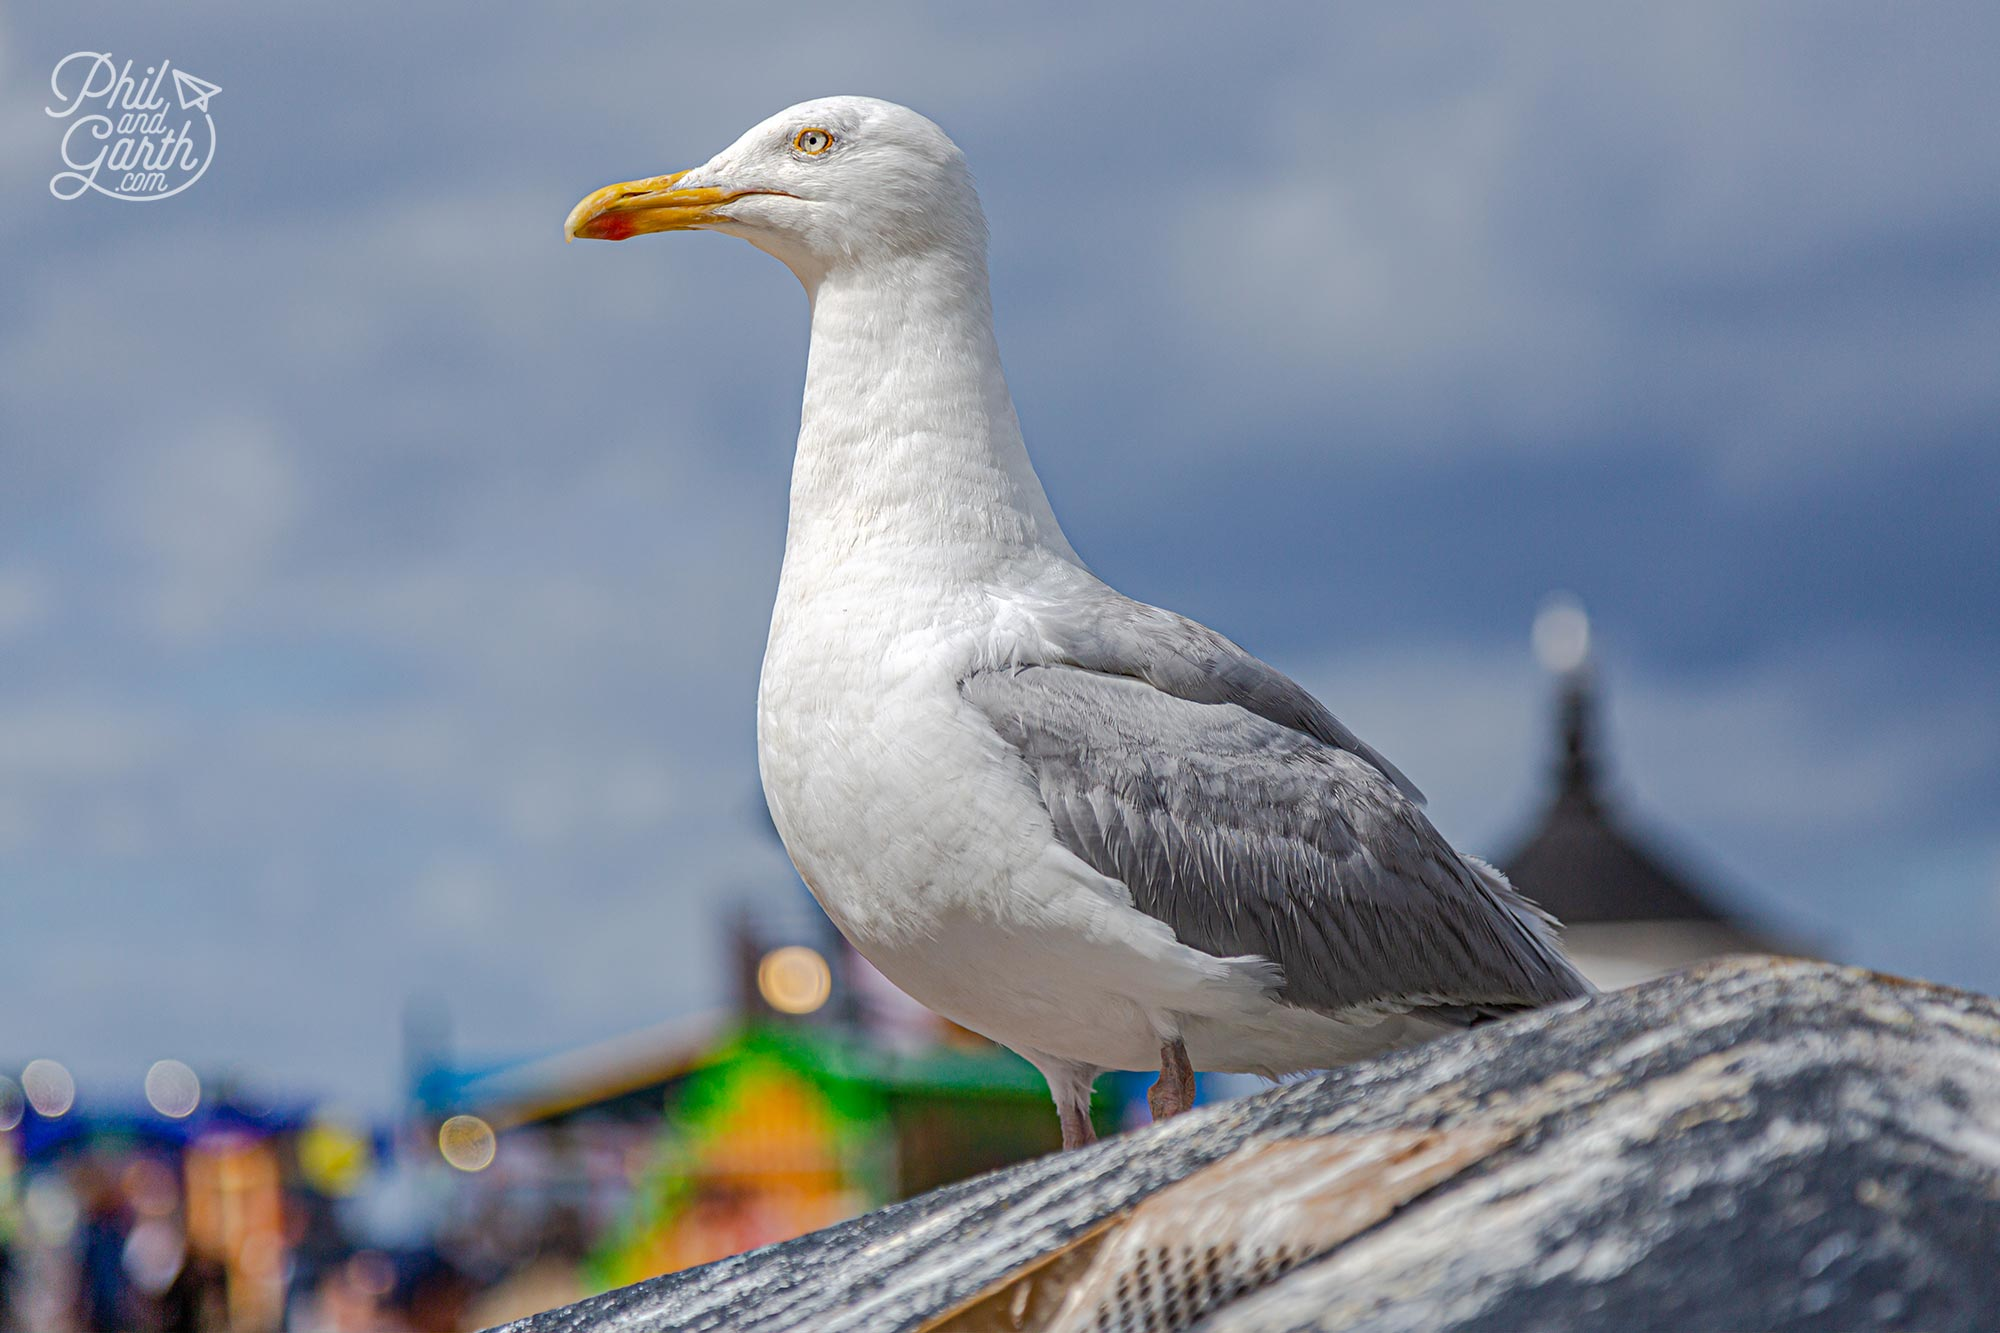 Whitby seagulls, or kittiwakes by their proper name are loud, greedy and will steal your food